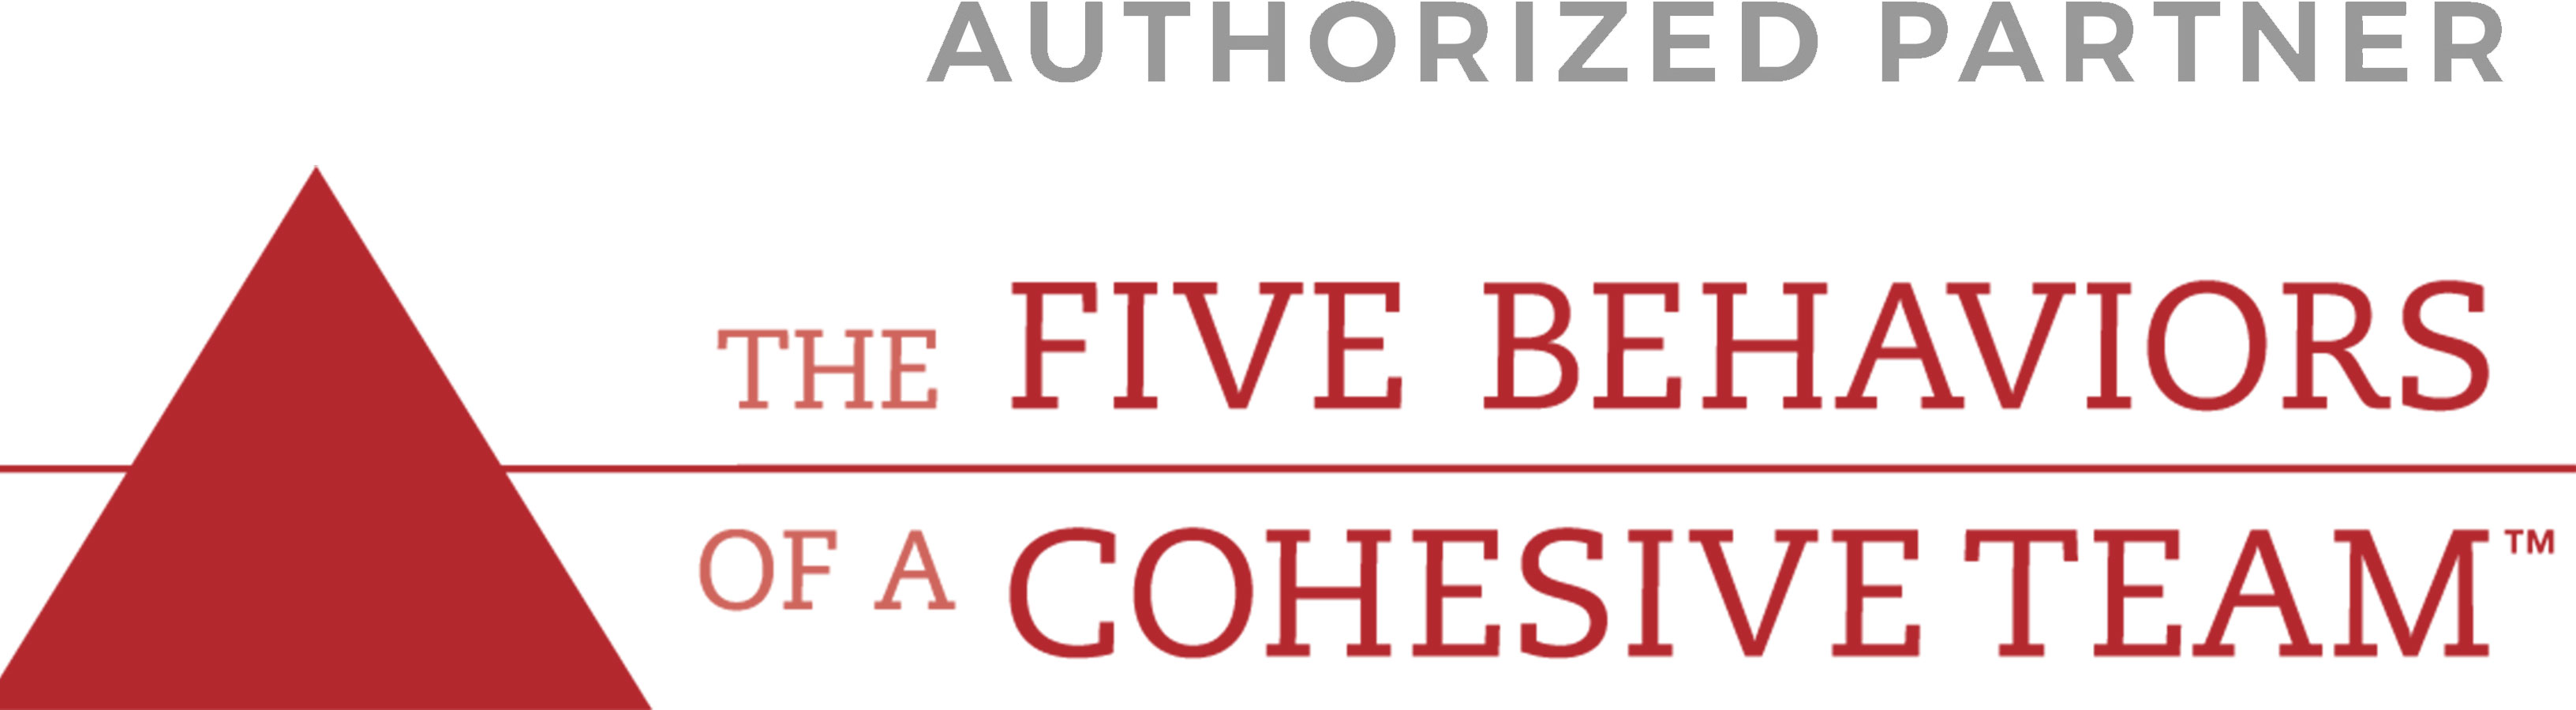 Five Behaviors of a Cohesive Team™ Authorized Partner